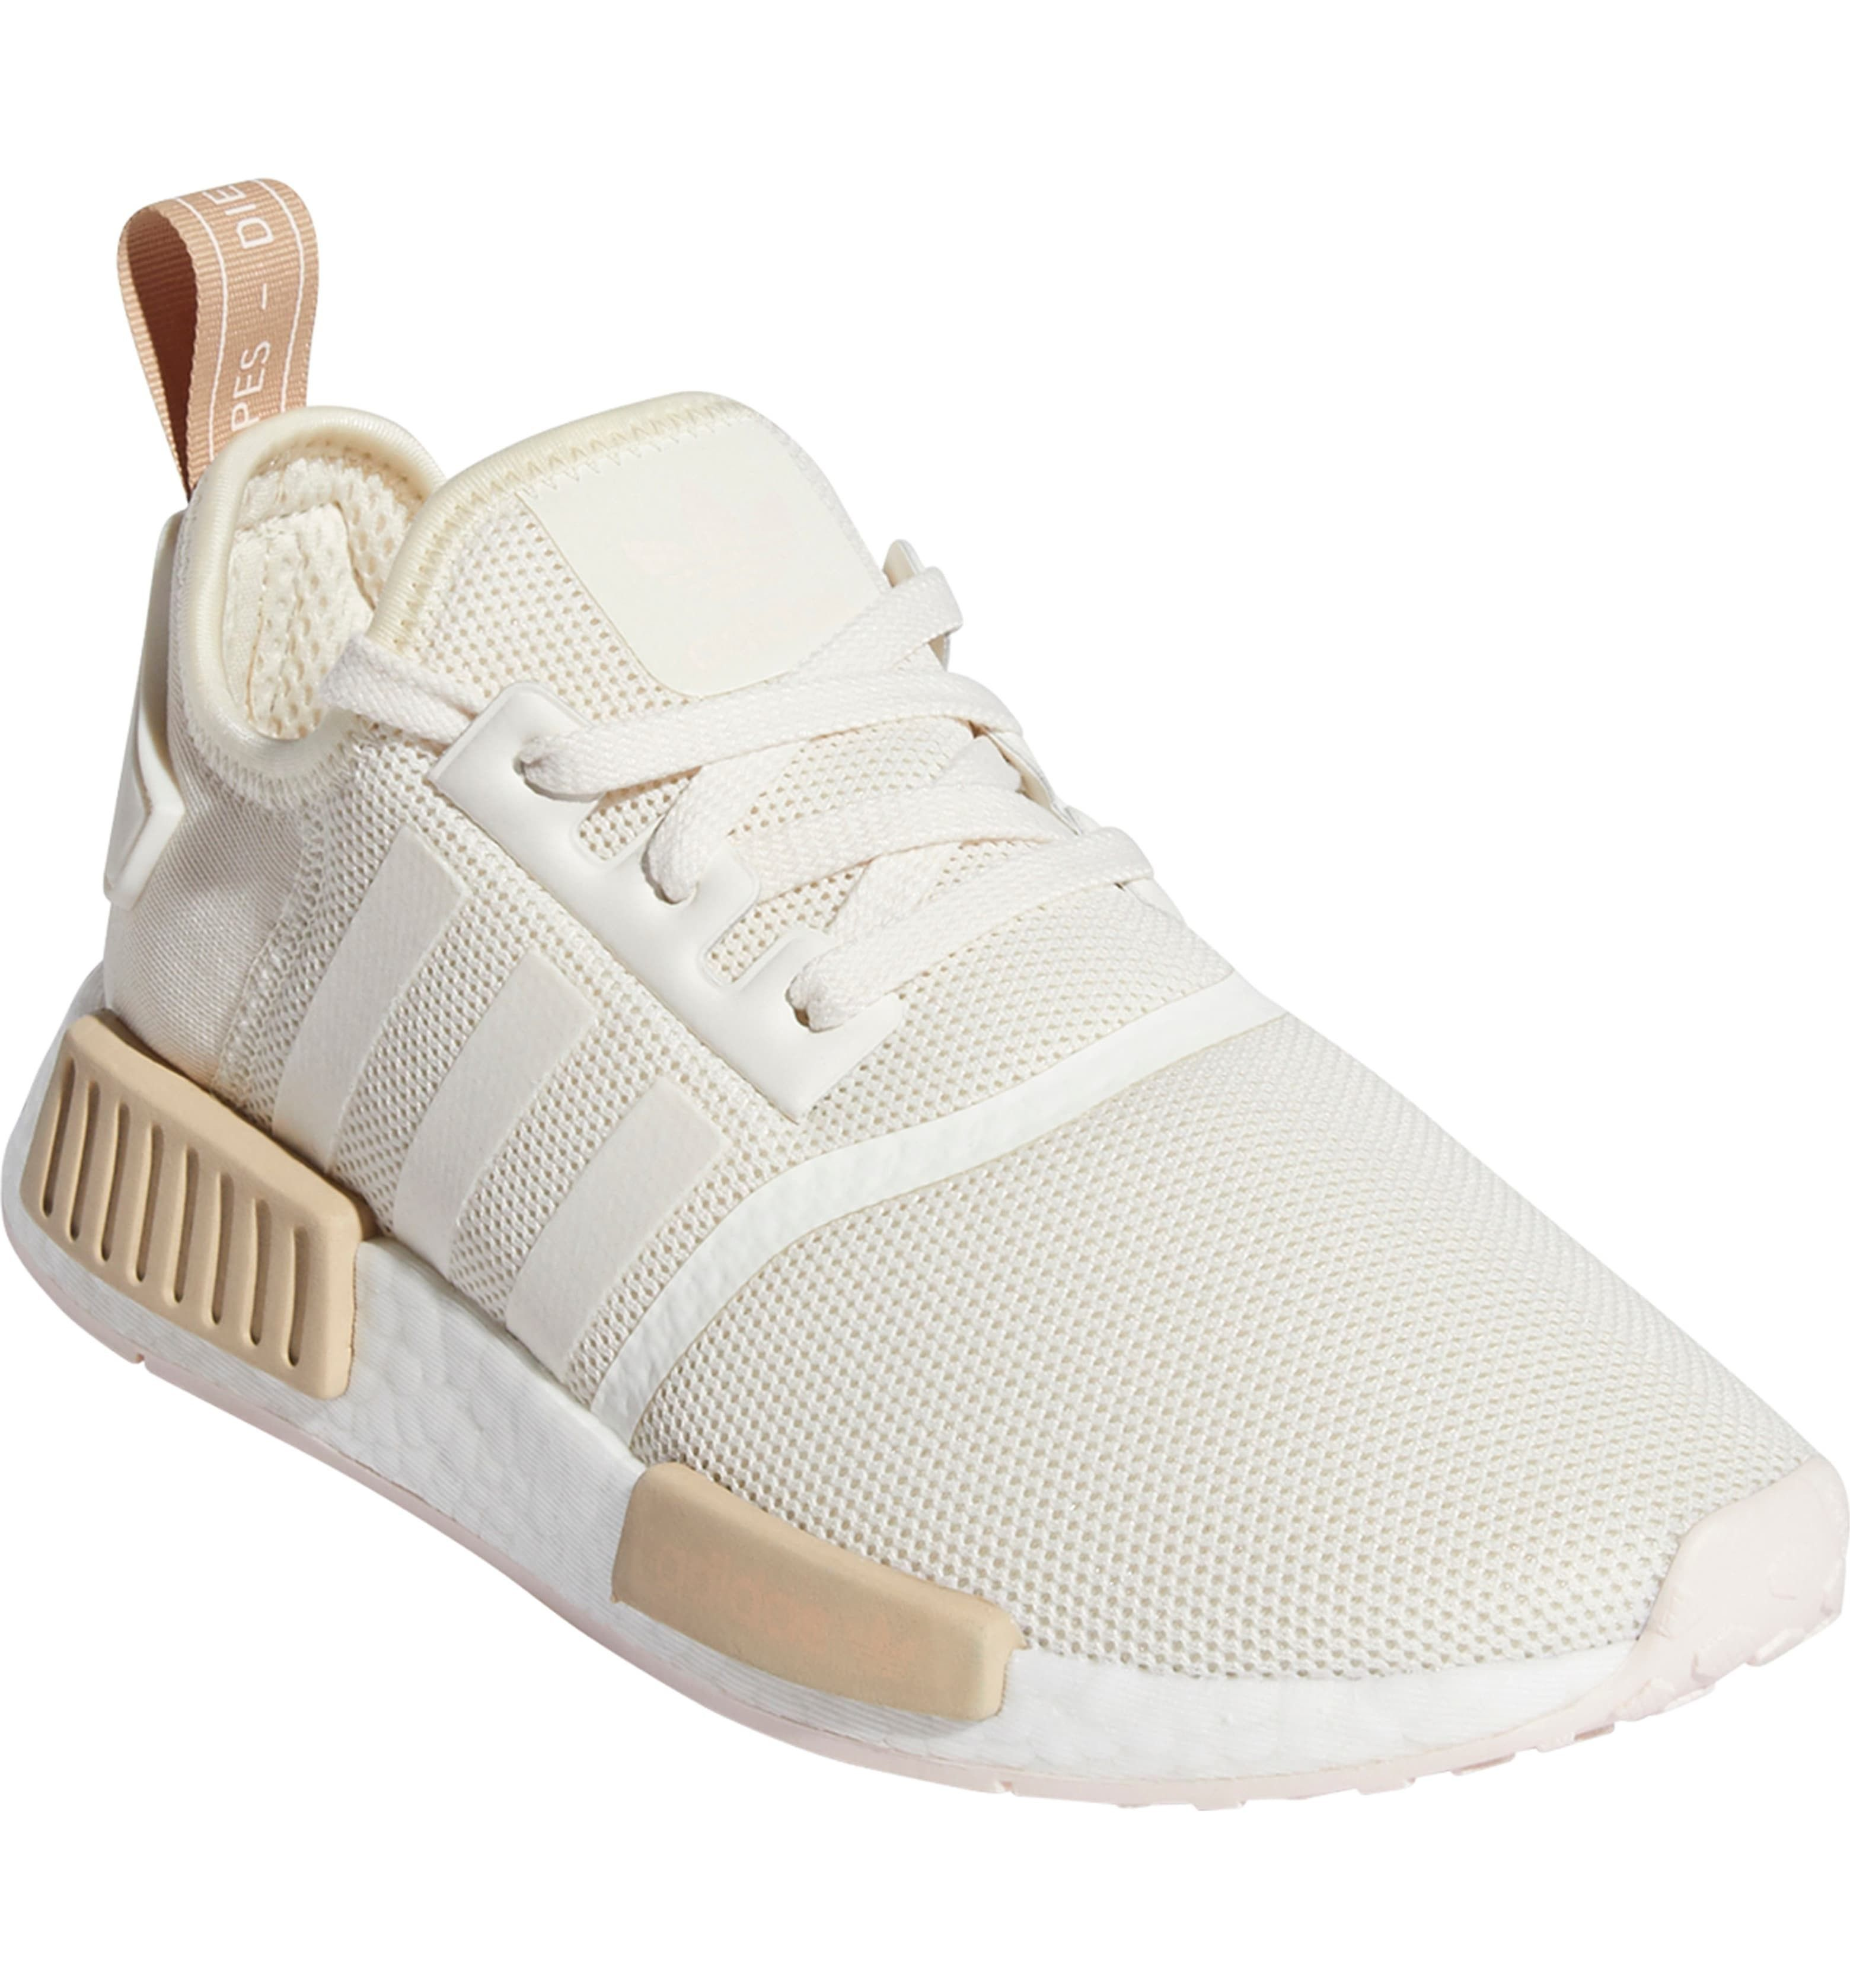 adidas NMD R1 White Rose Womens Release Date - Sneaker